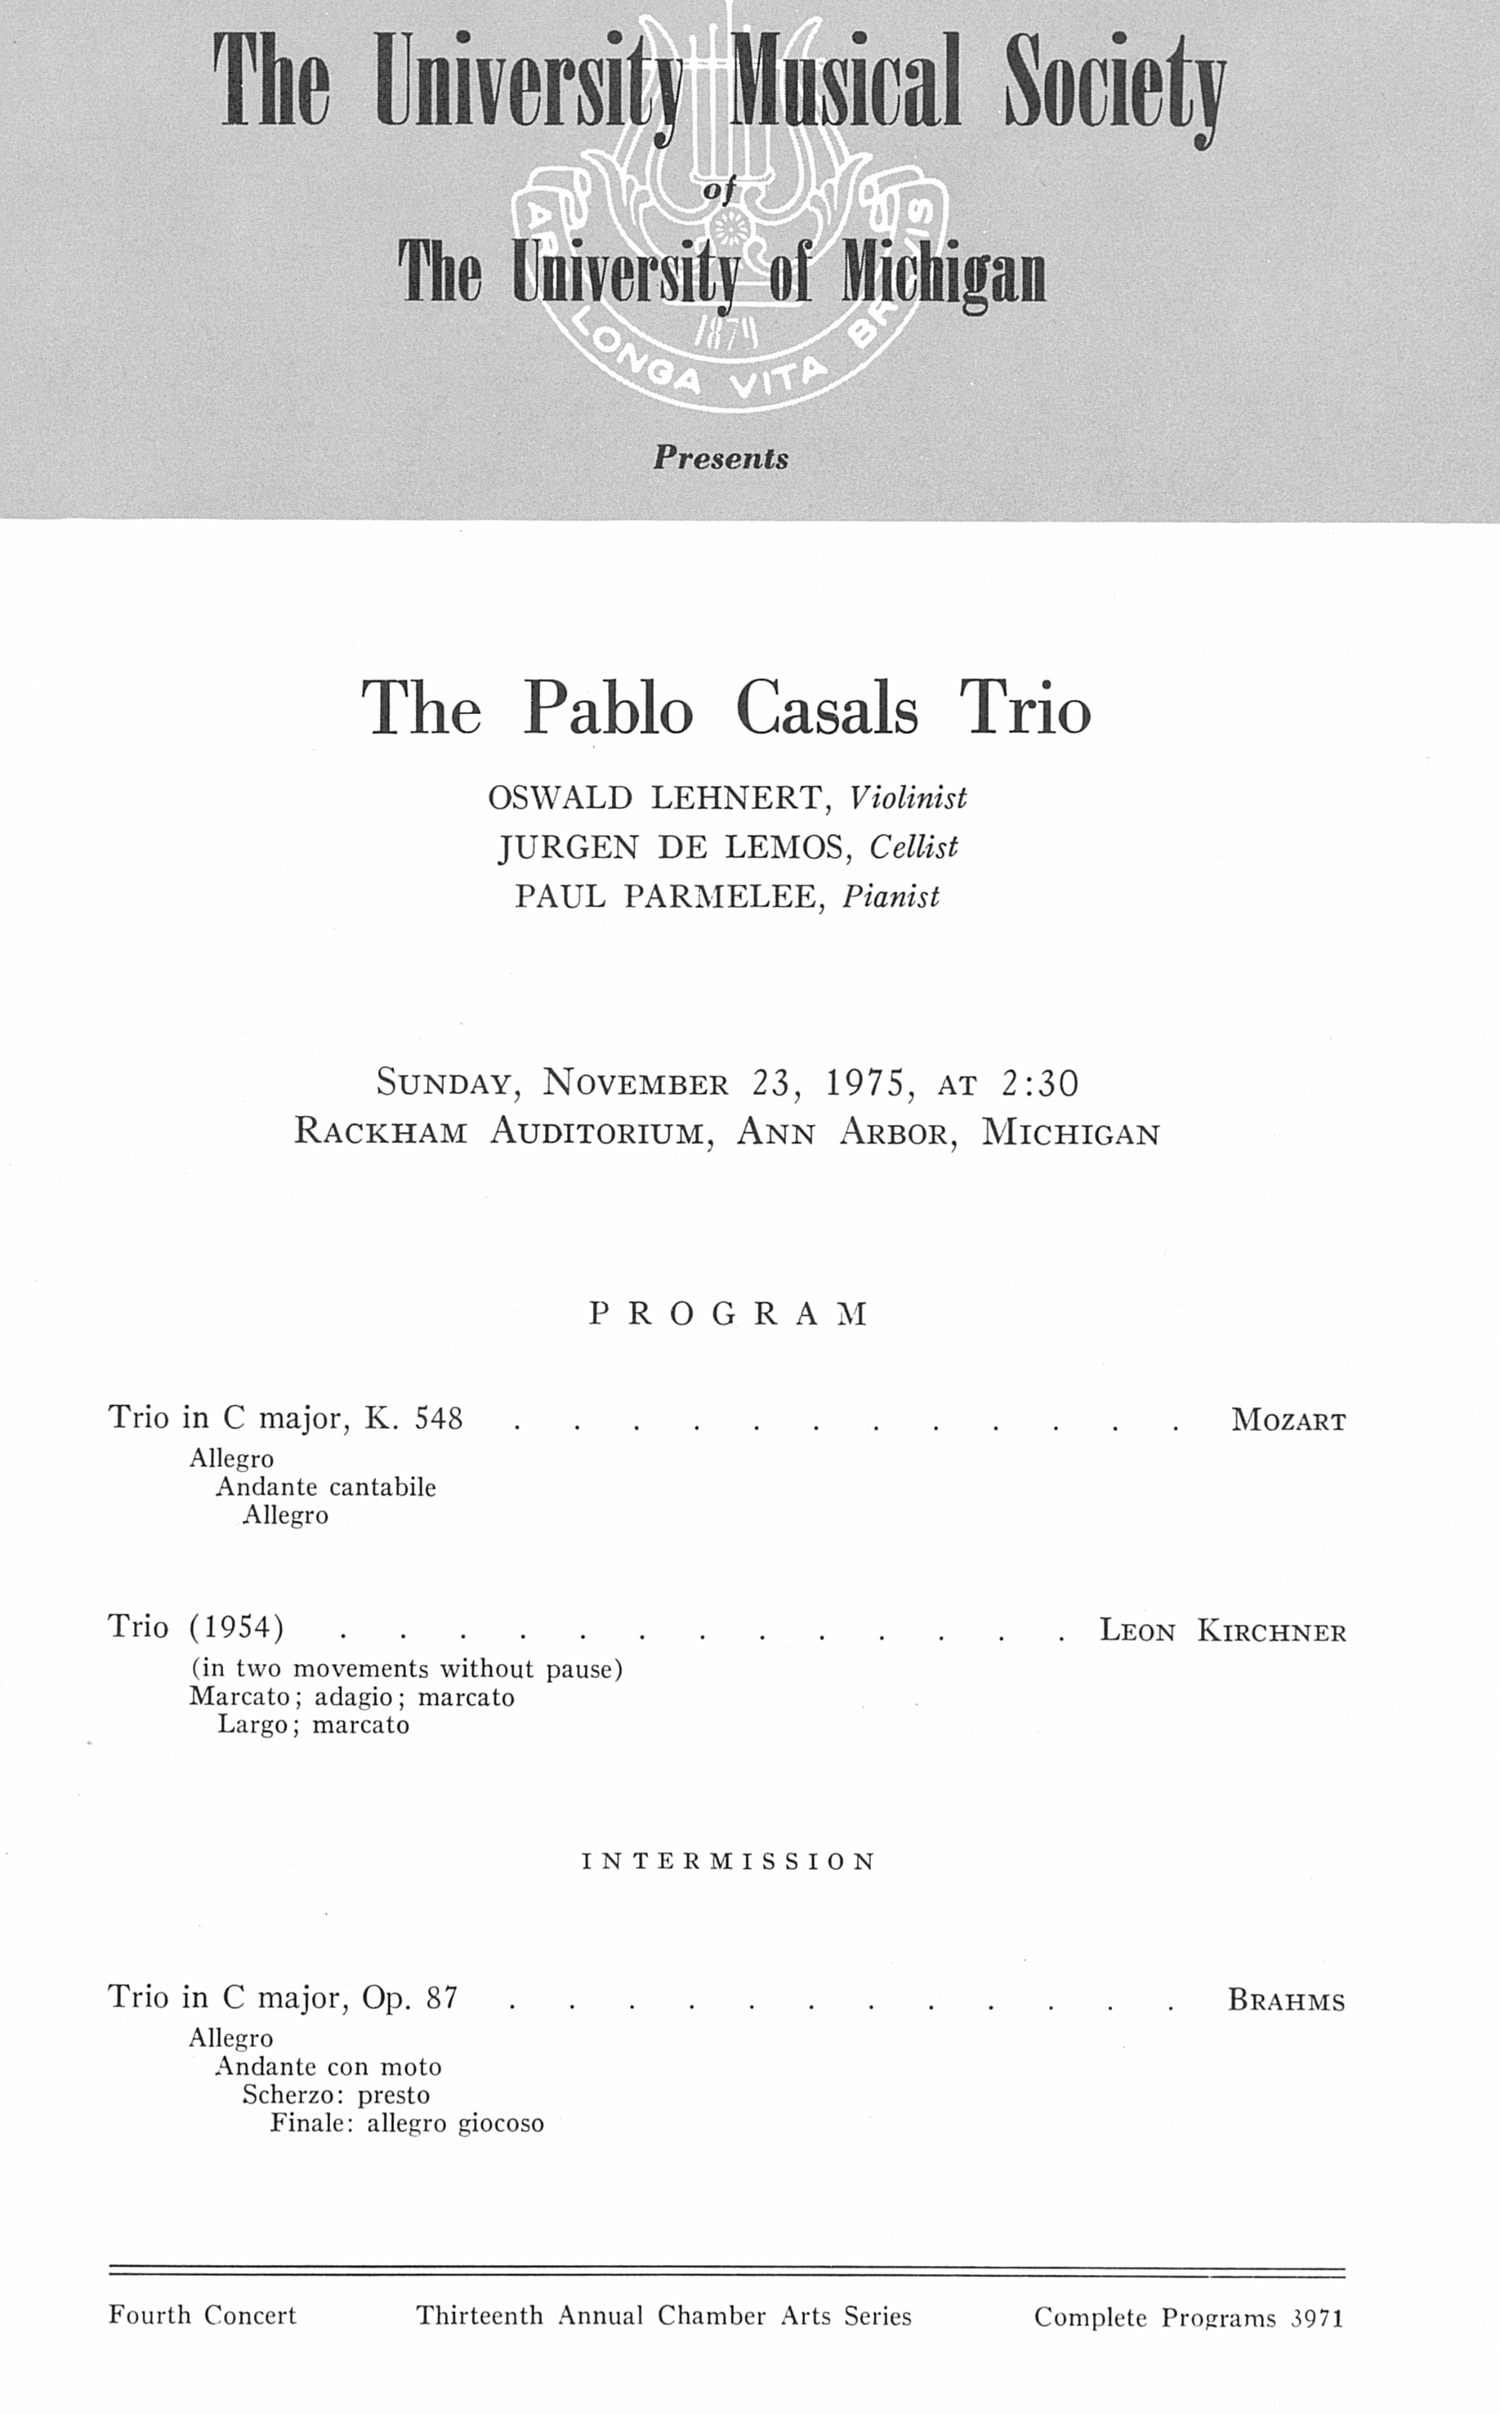 UMS Concert Program, November 23, 1975: The Pablo Casals Trio --  image